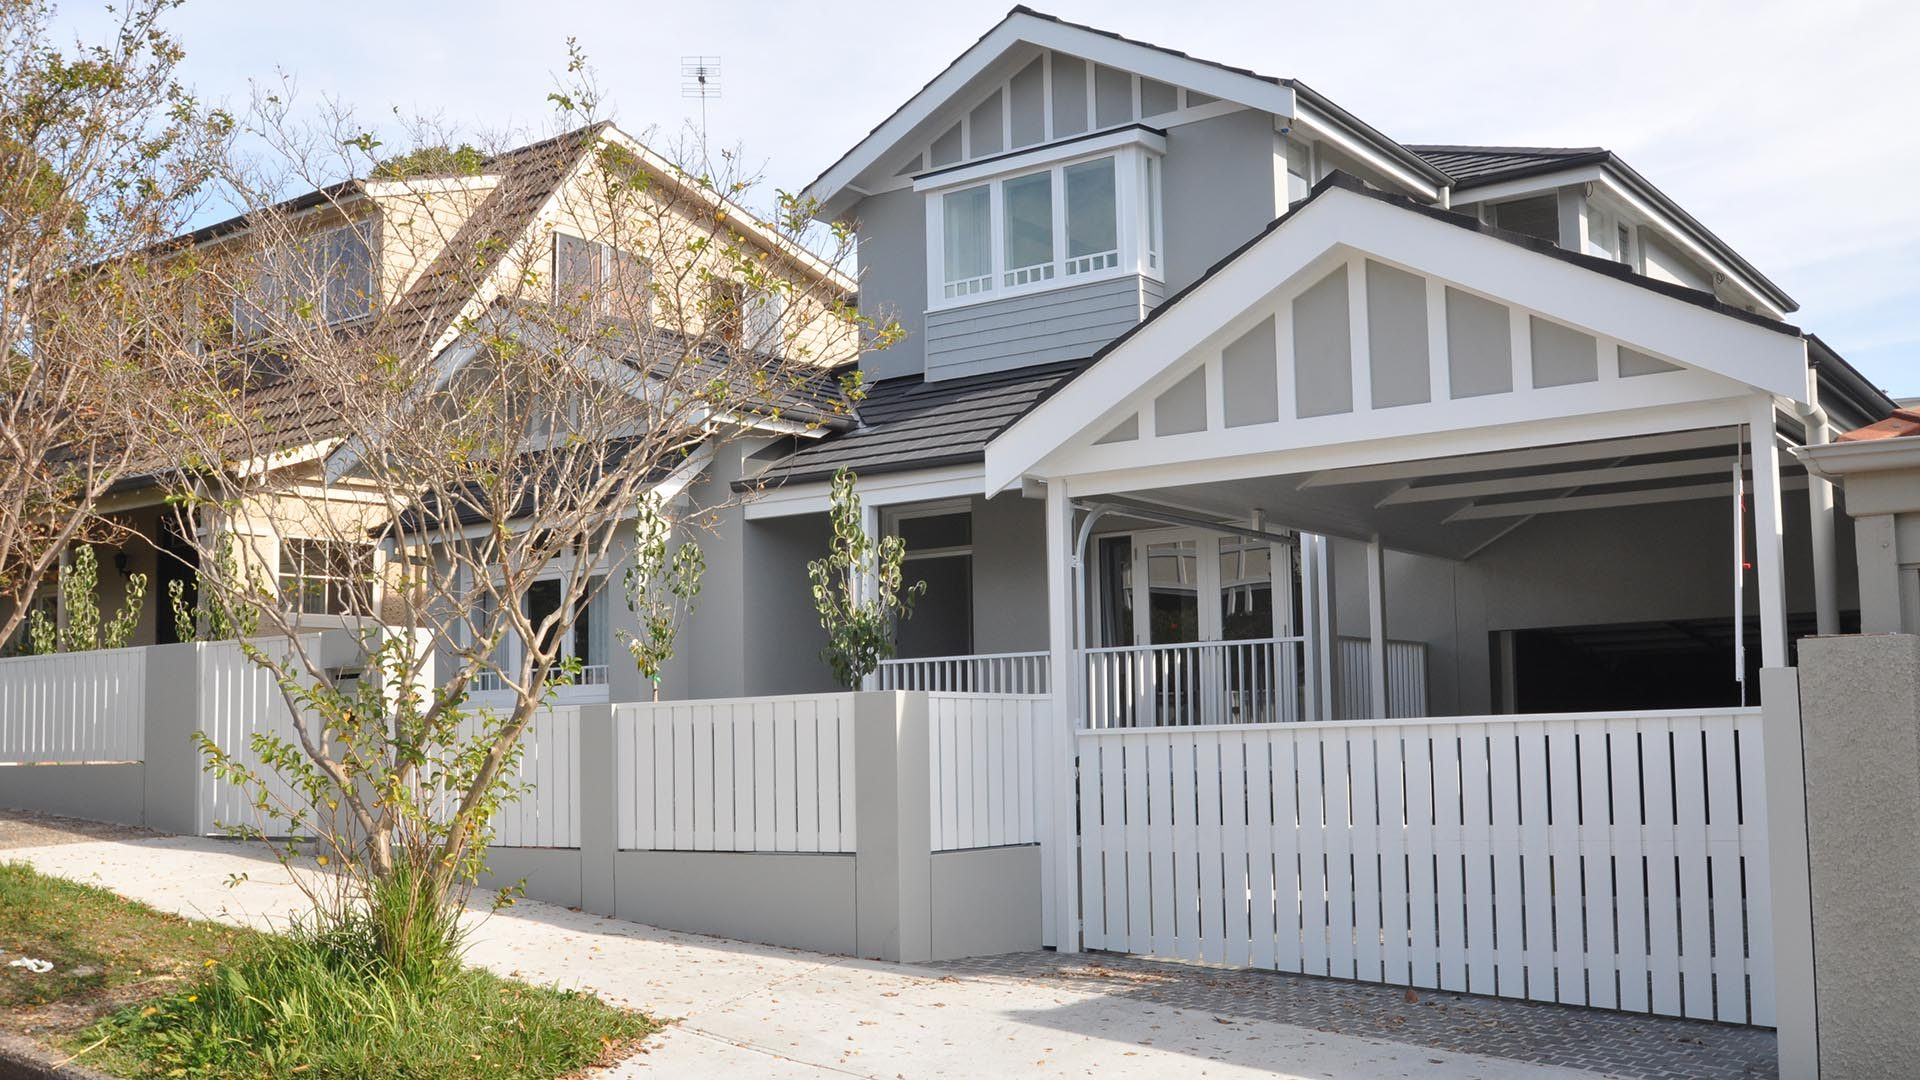 Mosman Front of house with garage and white fence.